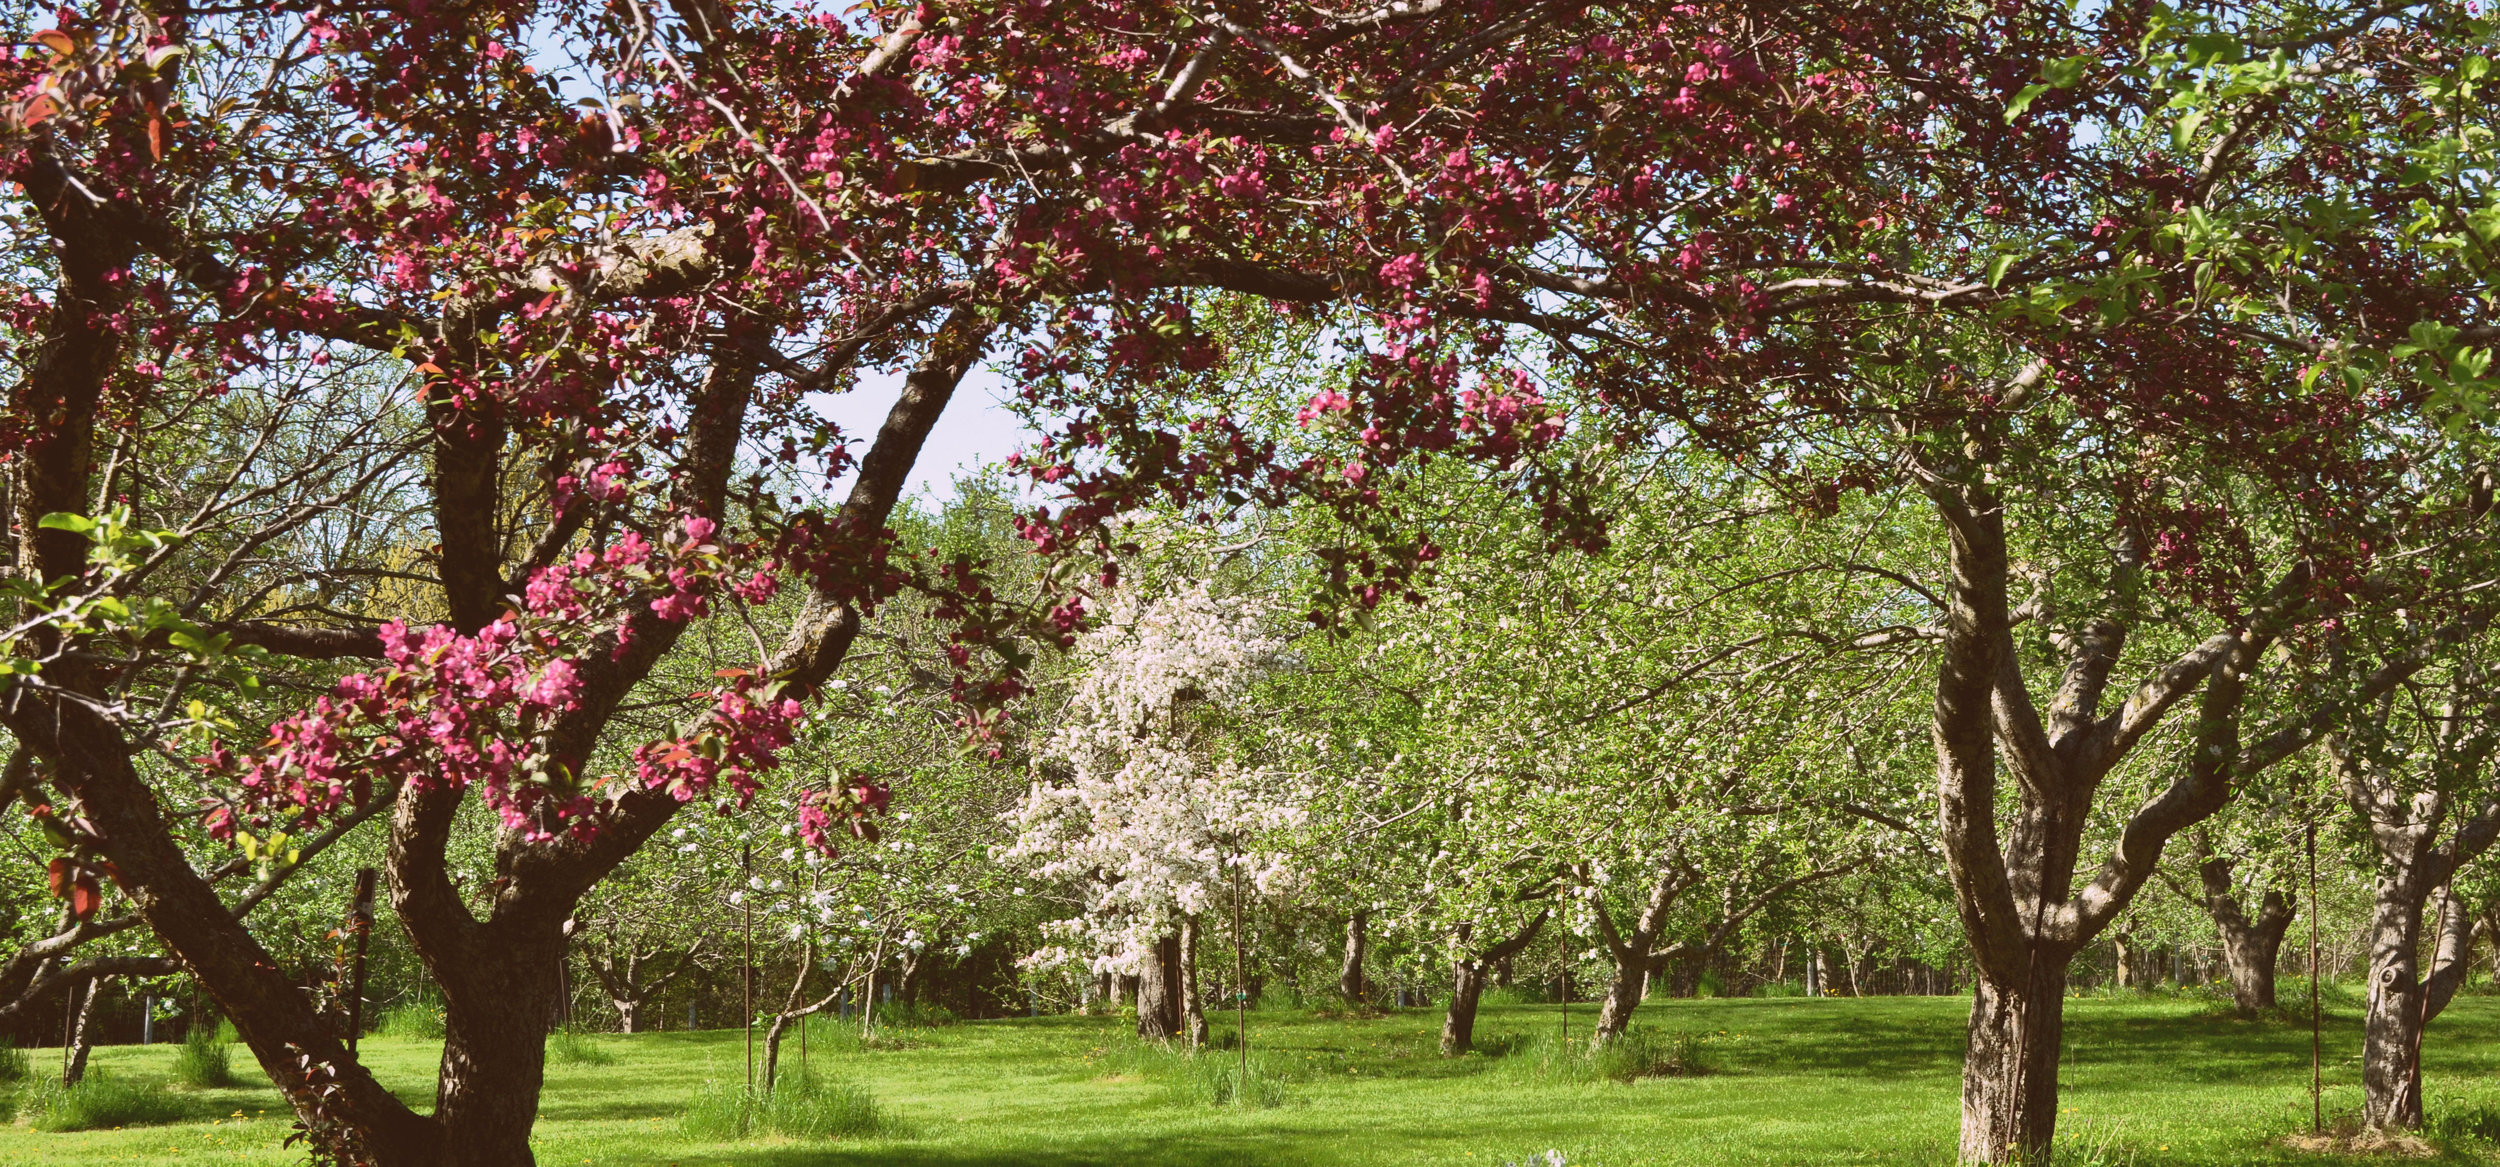 Each spring more than 1,200 rare apple varieties come brilliantly into bloom in Seed Savers Exchange's Historic Orchard.